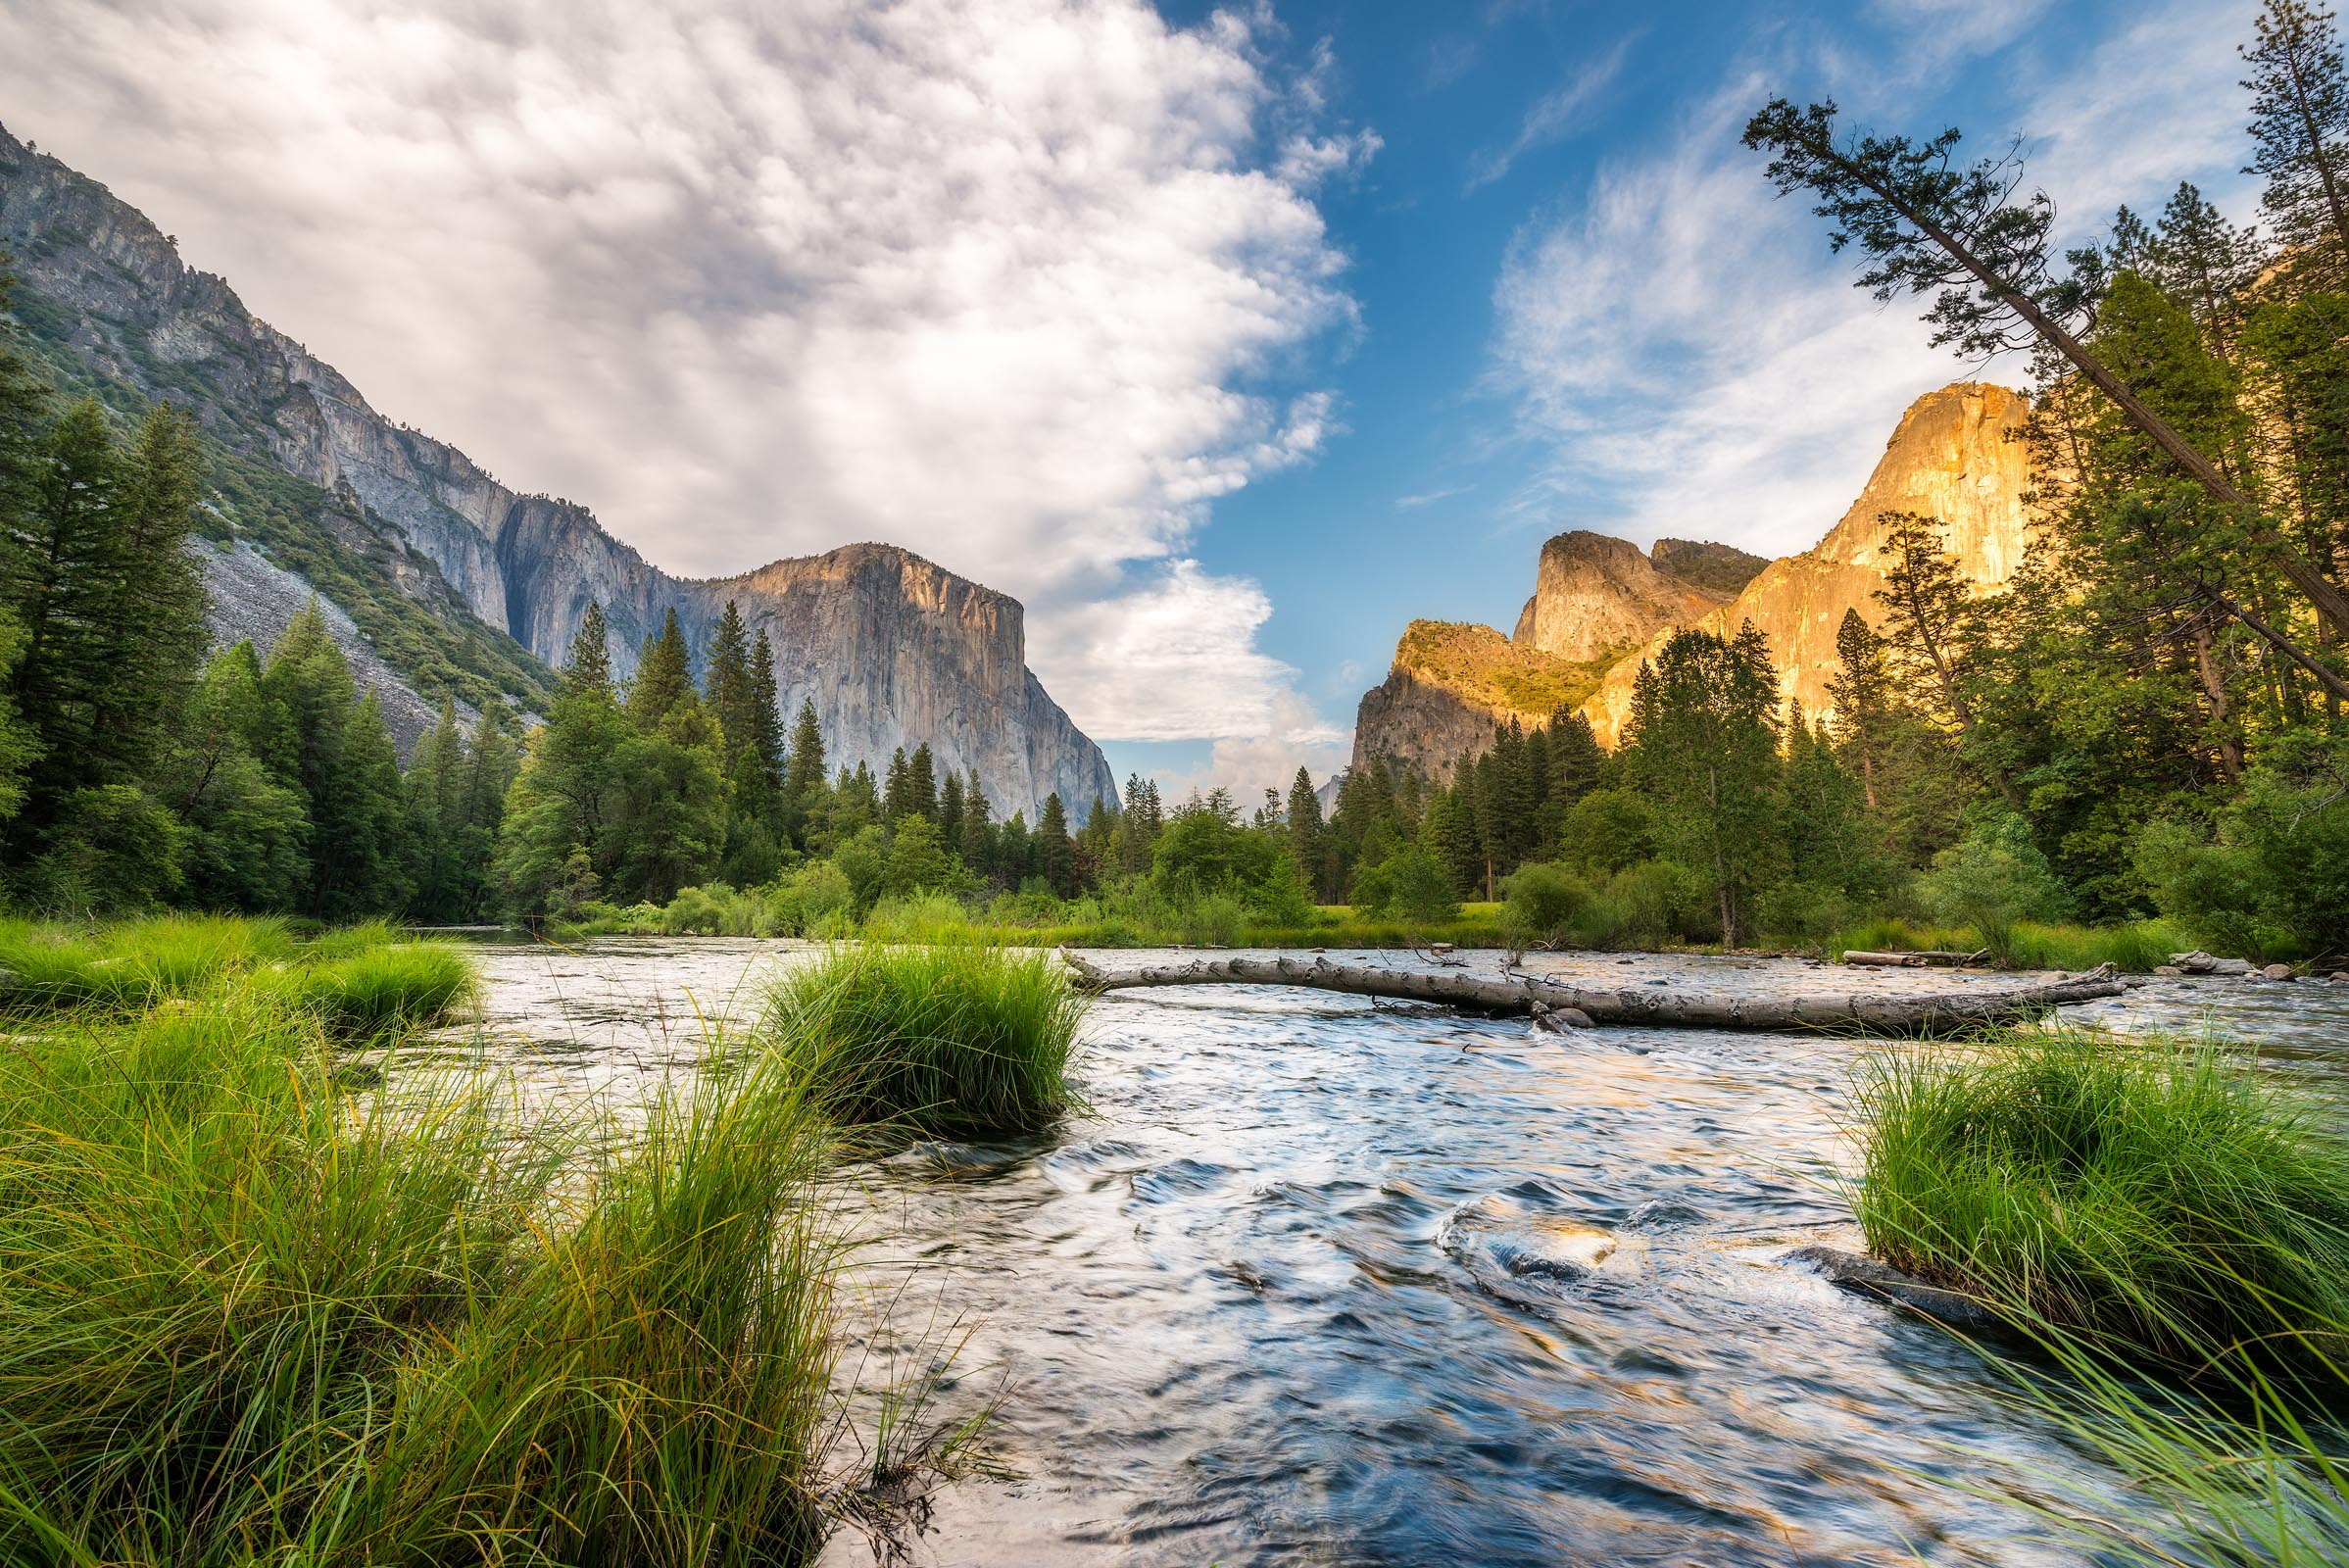 Photograph of Valley Floor in Yosemite, California by Brent Goldman Photography